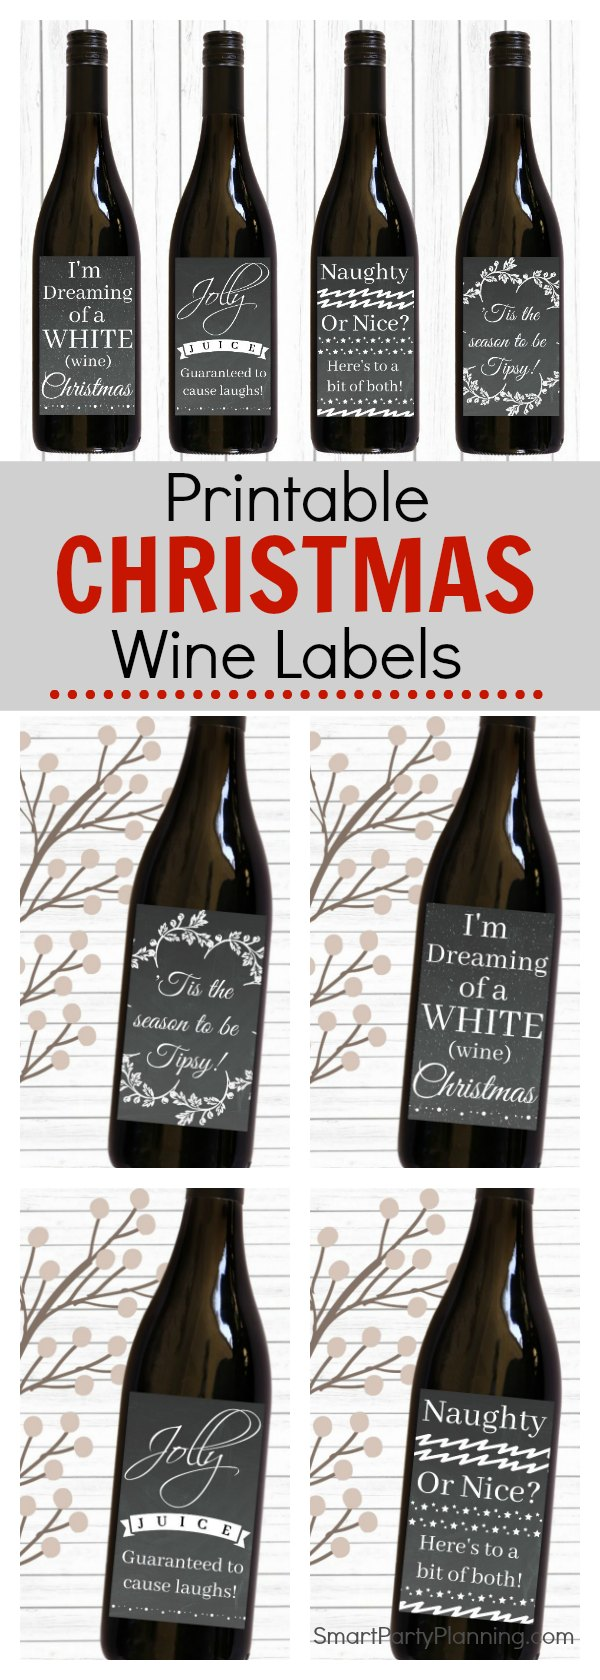 Struggling to think of the perfect Christmas gift? This one will hit the spot with the wine lovers. Add a printable Christmas wine label to a delicious bottle of wine and you find yourself with the perfect gift every single time.  There are 4 chalkboard Christmas designs to choose from, each one with their own element of fun. This is one of the best Christmas DIY ideas you can have! #Christmasgift #Winelovers #Printable #Wine #Festive #Christmaswine